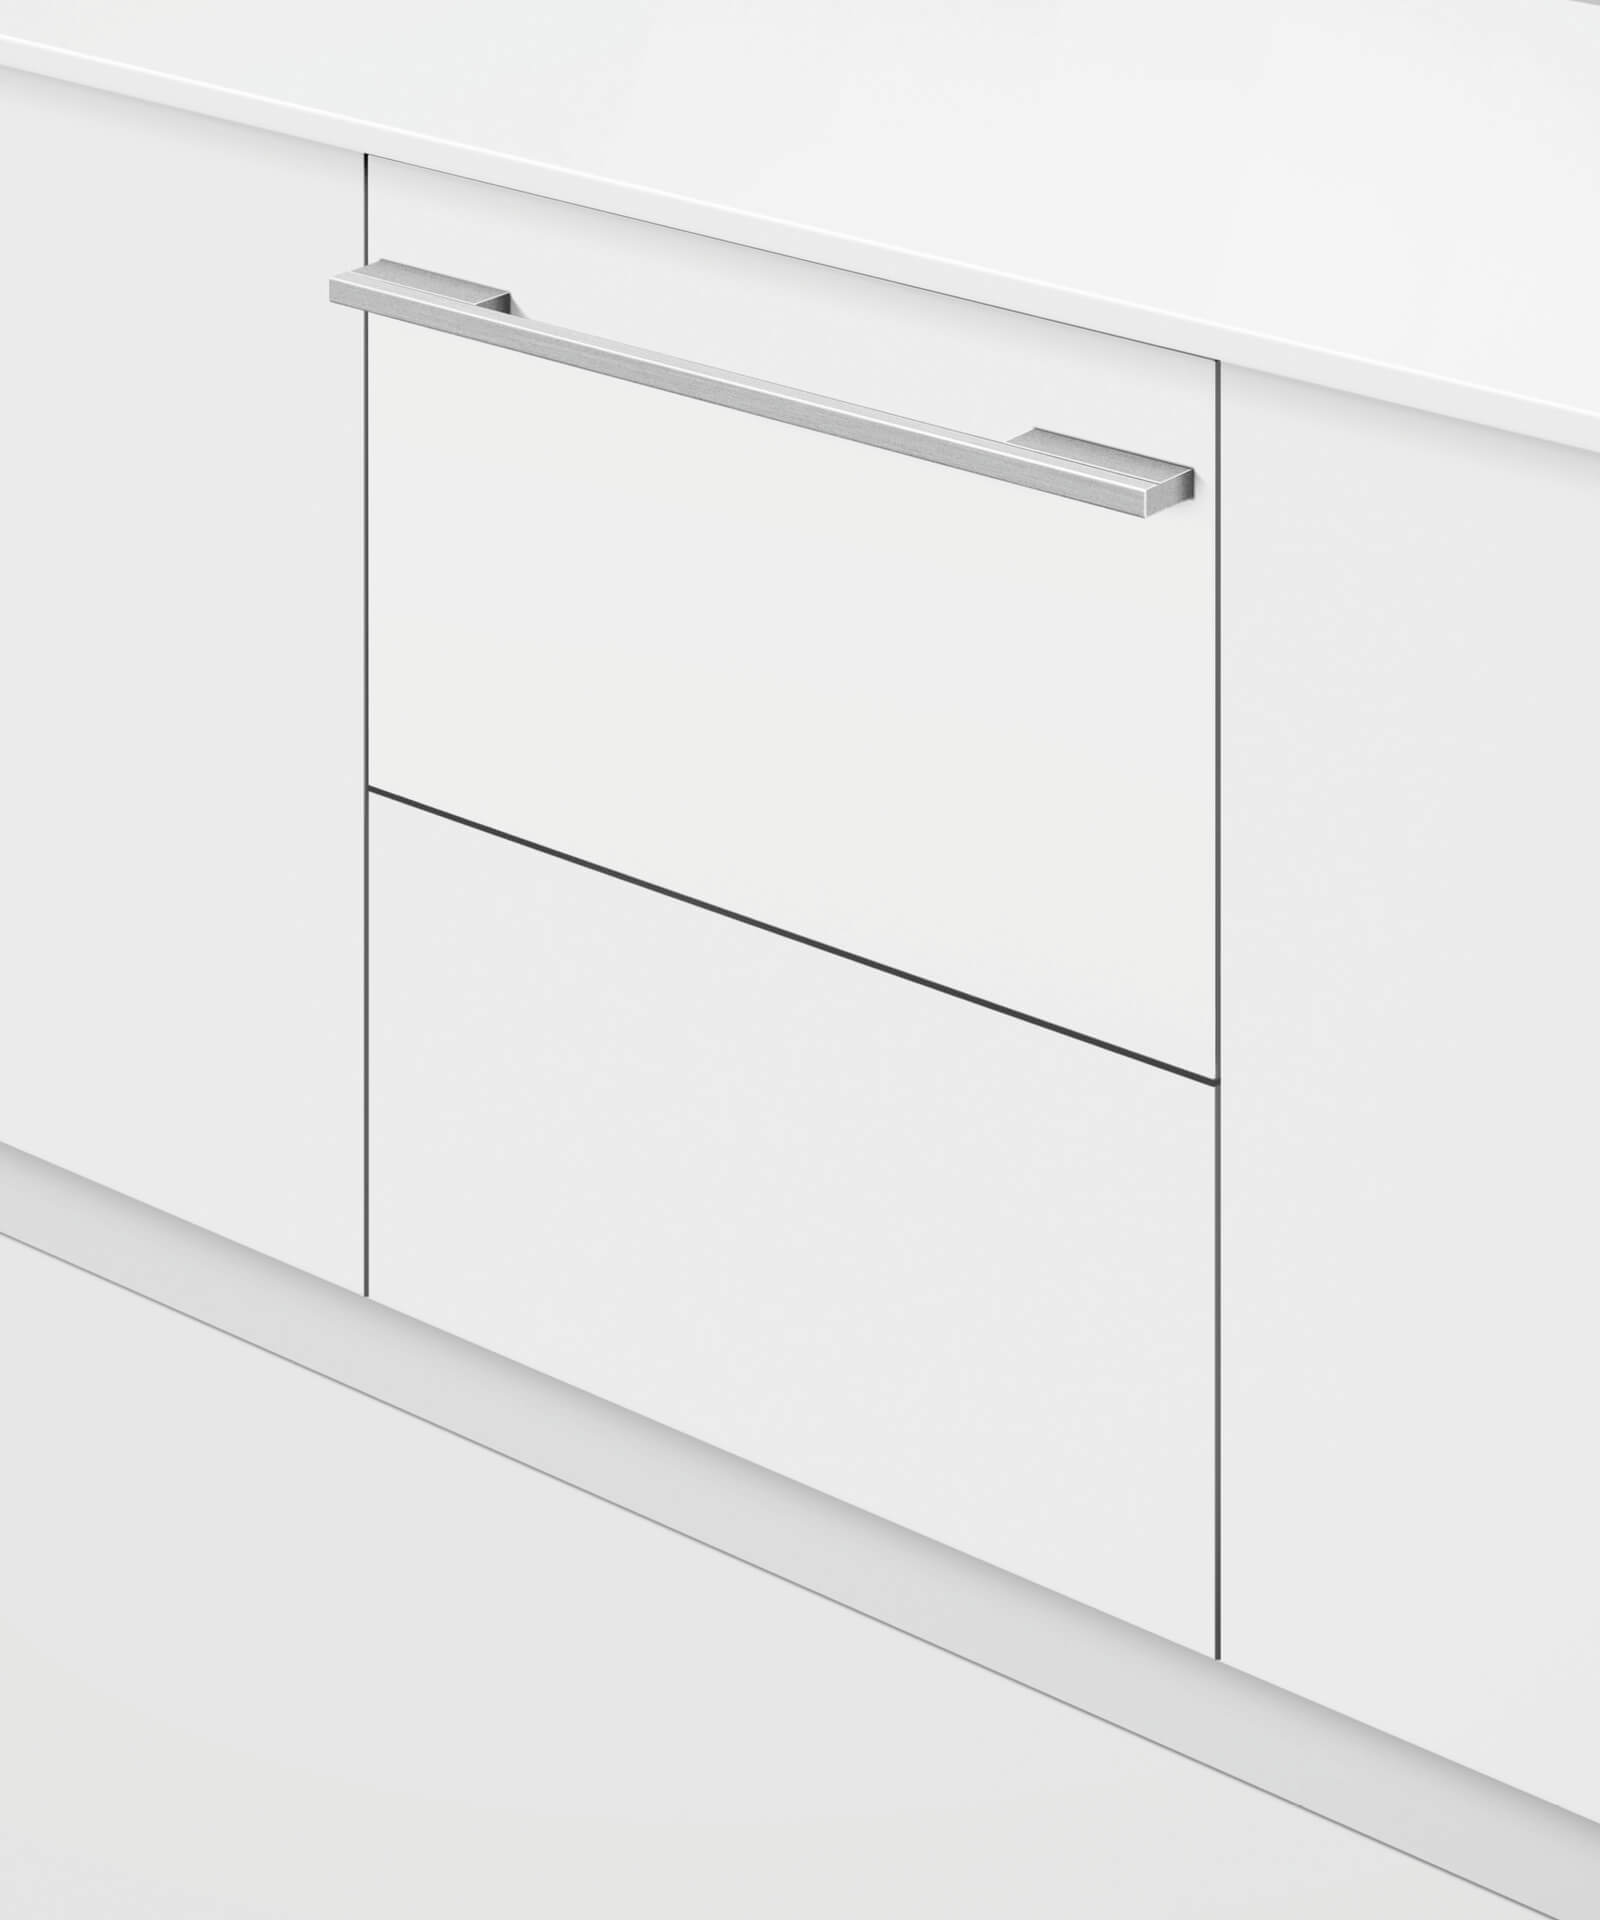 DD60SHI9 - Integrated Single DishDrawer™ Dishwasher incl Sanitise, Extra Dry, full flex racking and water softener - 81665